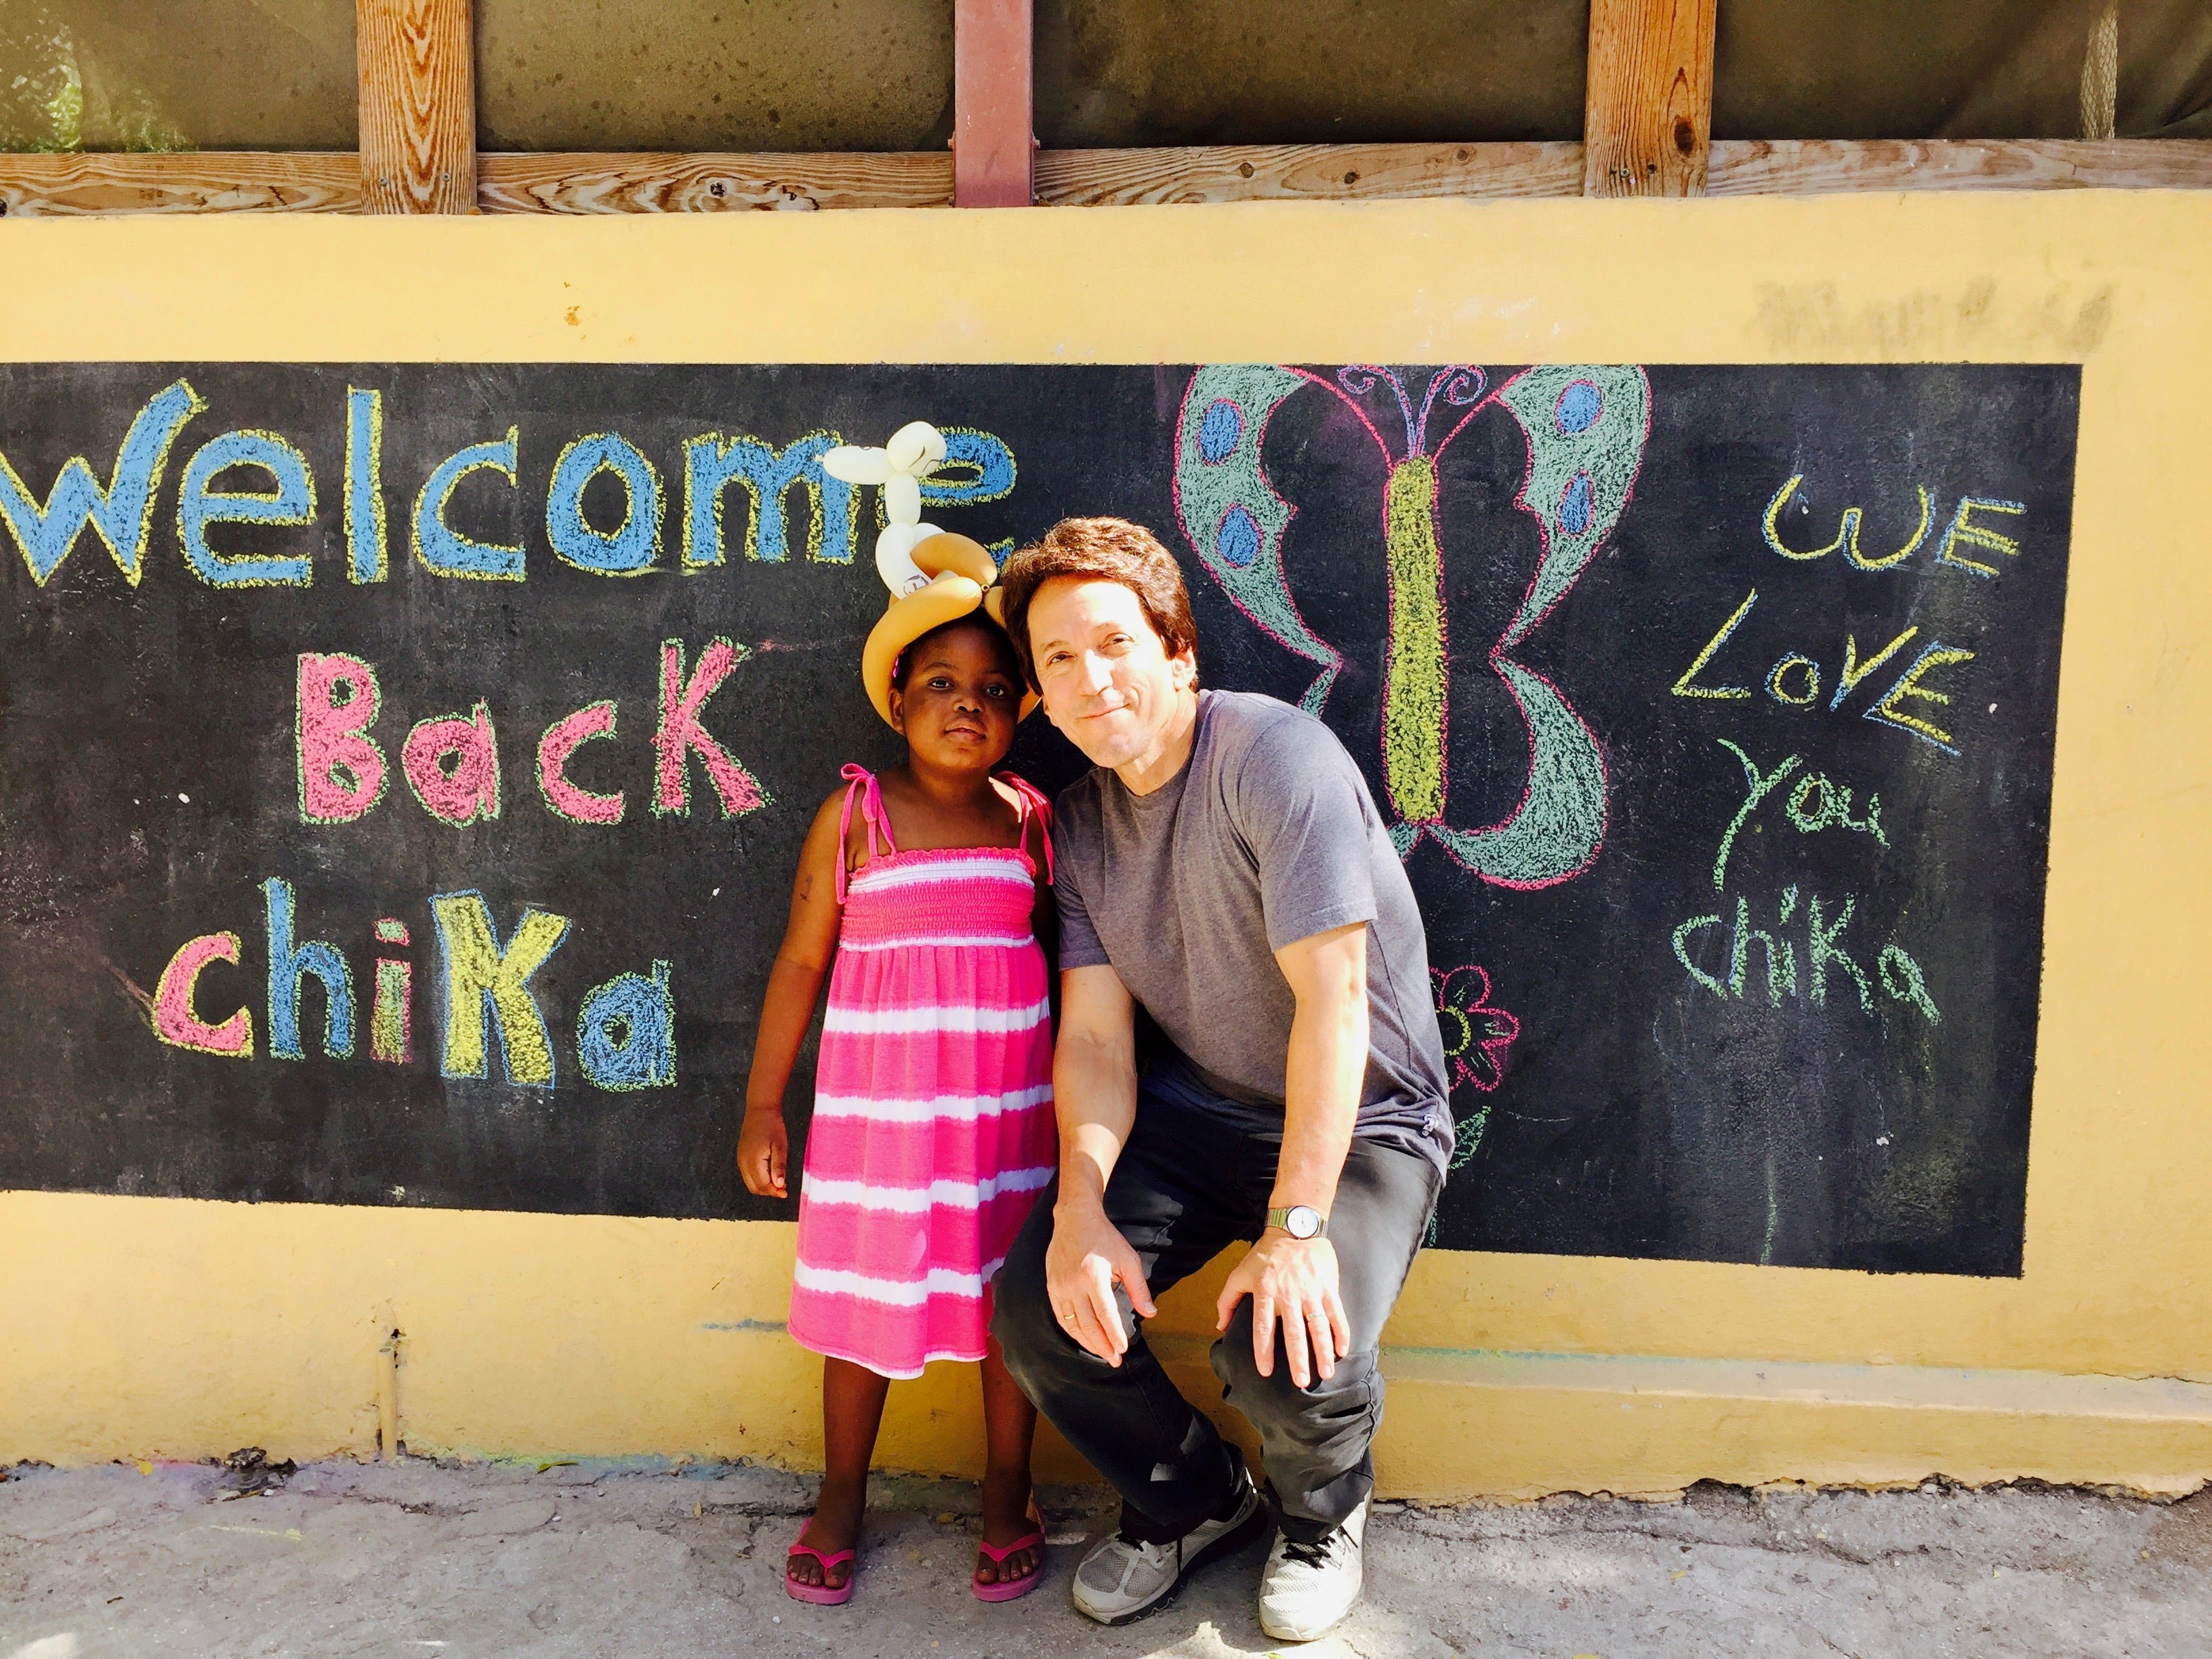 """For the first time since leaving for treatment, Chika returned to Haiti in December 2015. Her arrival was triumphant. The kids painted a welcome mural and when the SUV pulled up, chanted """"Chi-ka! Chi-ka!"""""""